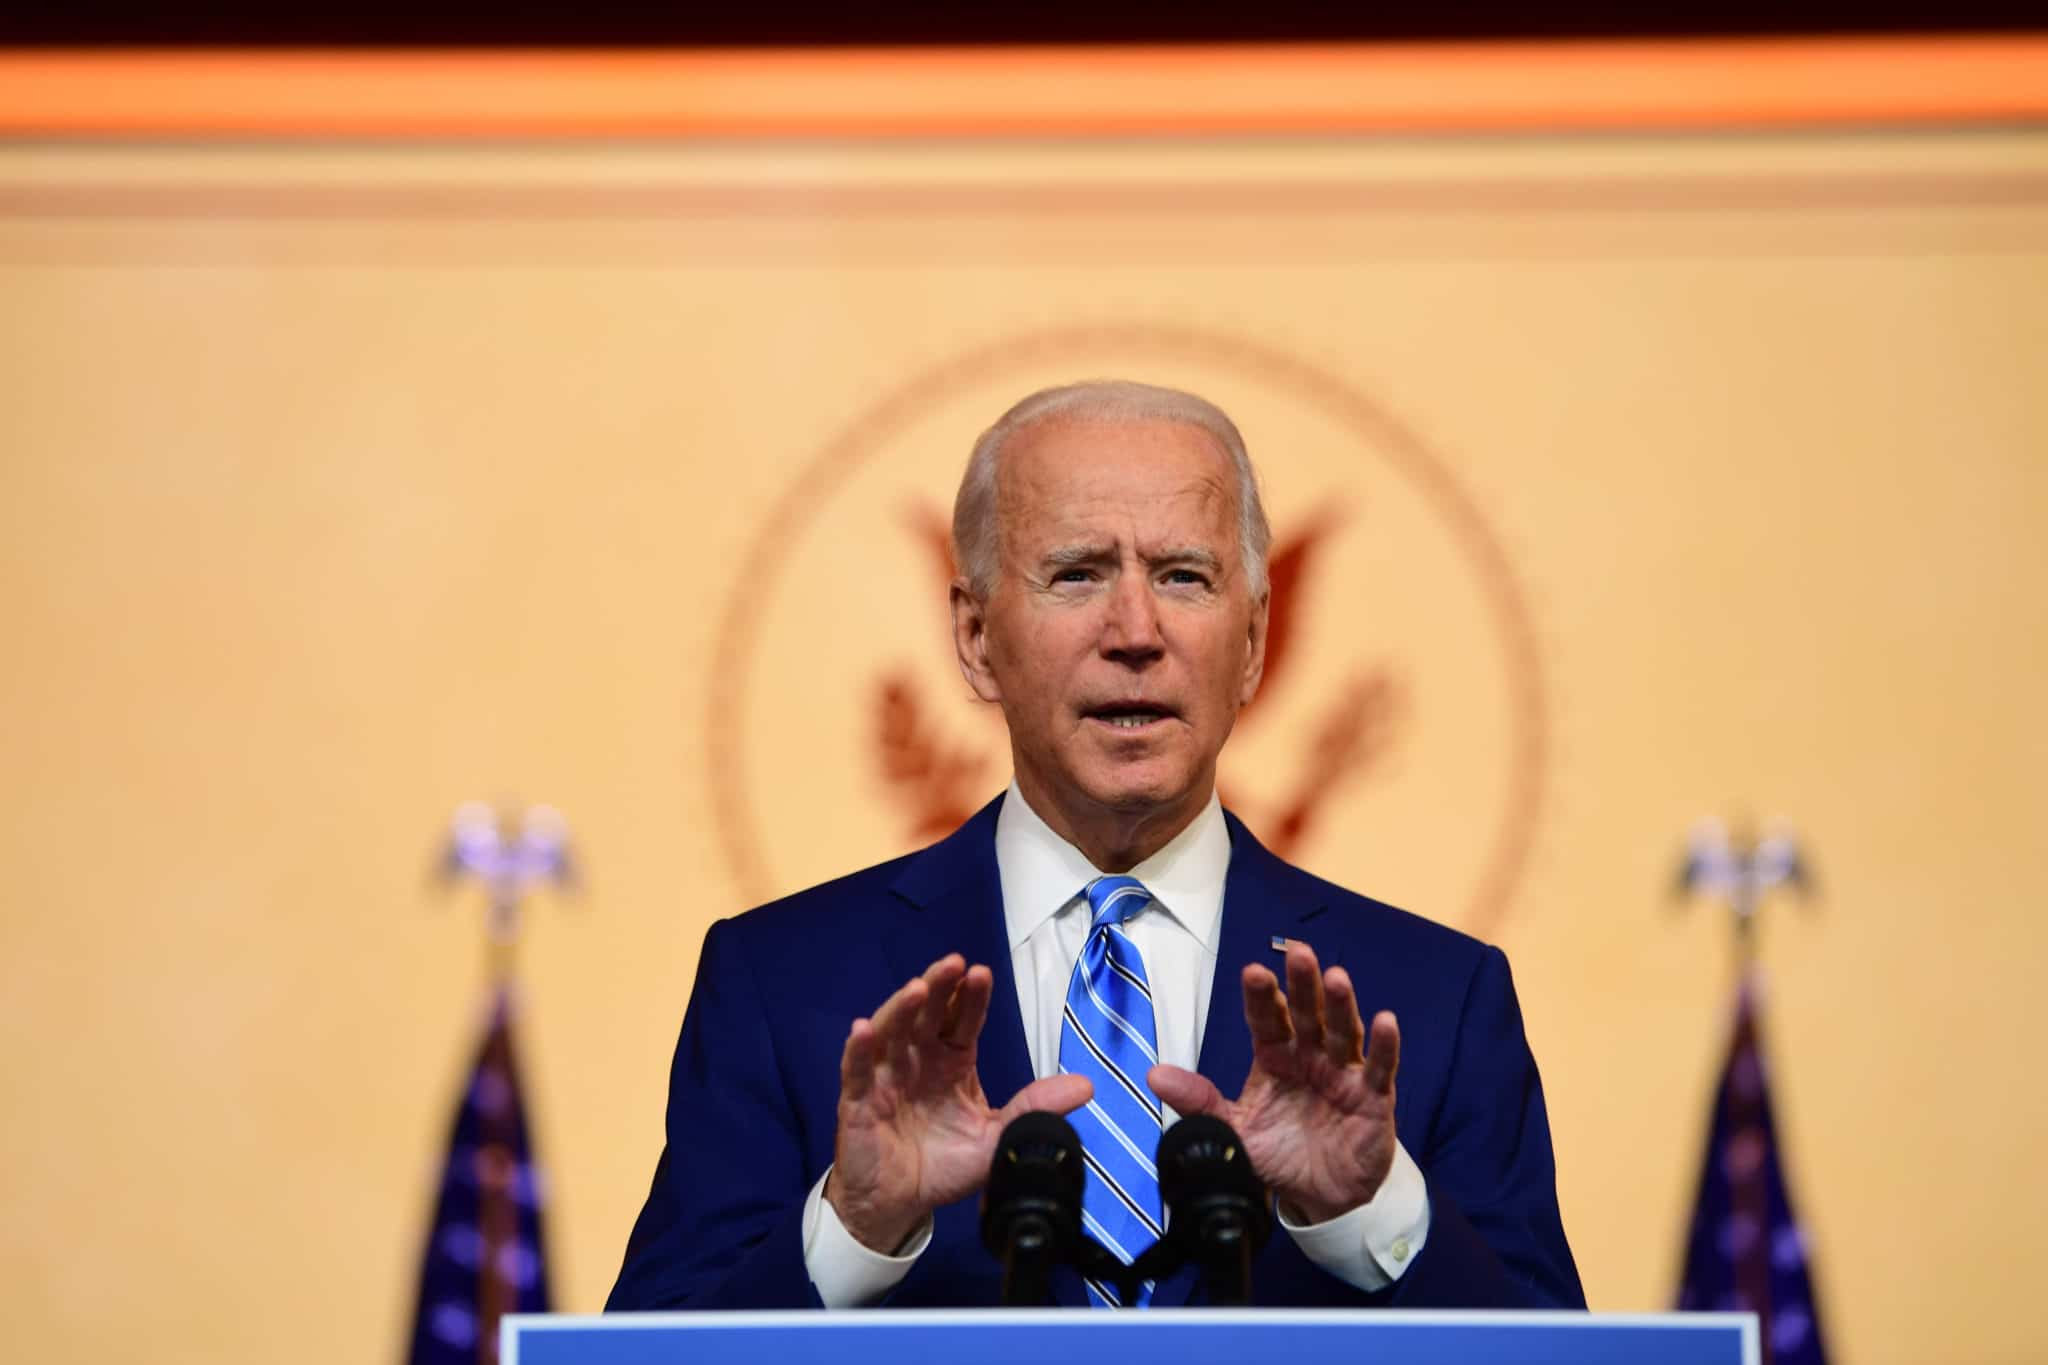 Joe Biden will transform LGBT+ rights when he takes office, starting with Trump's trans military ban